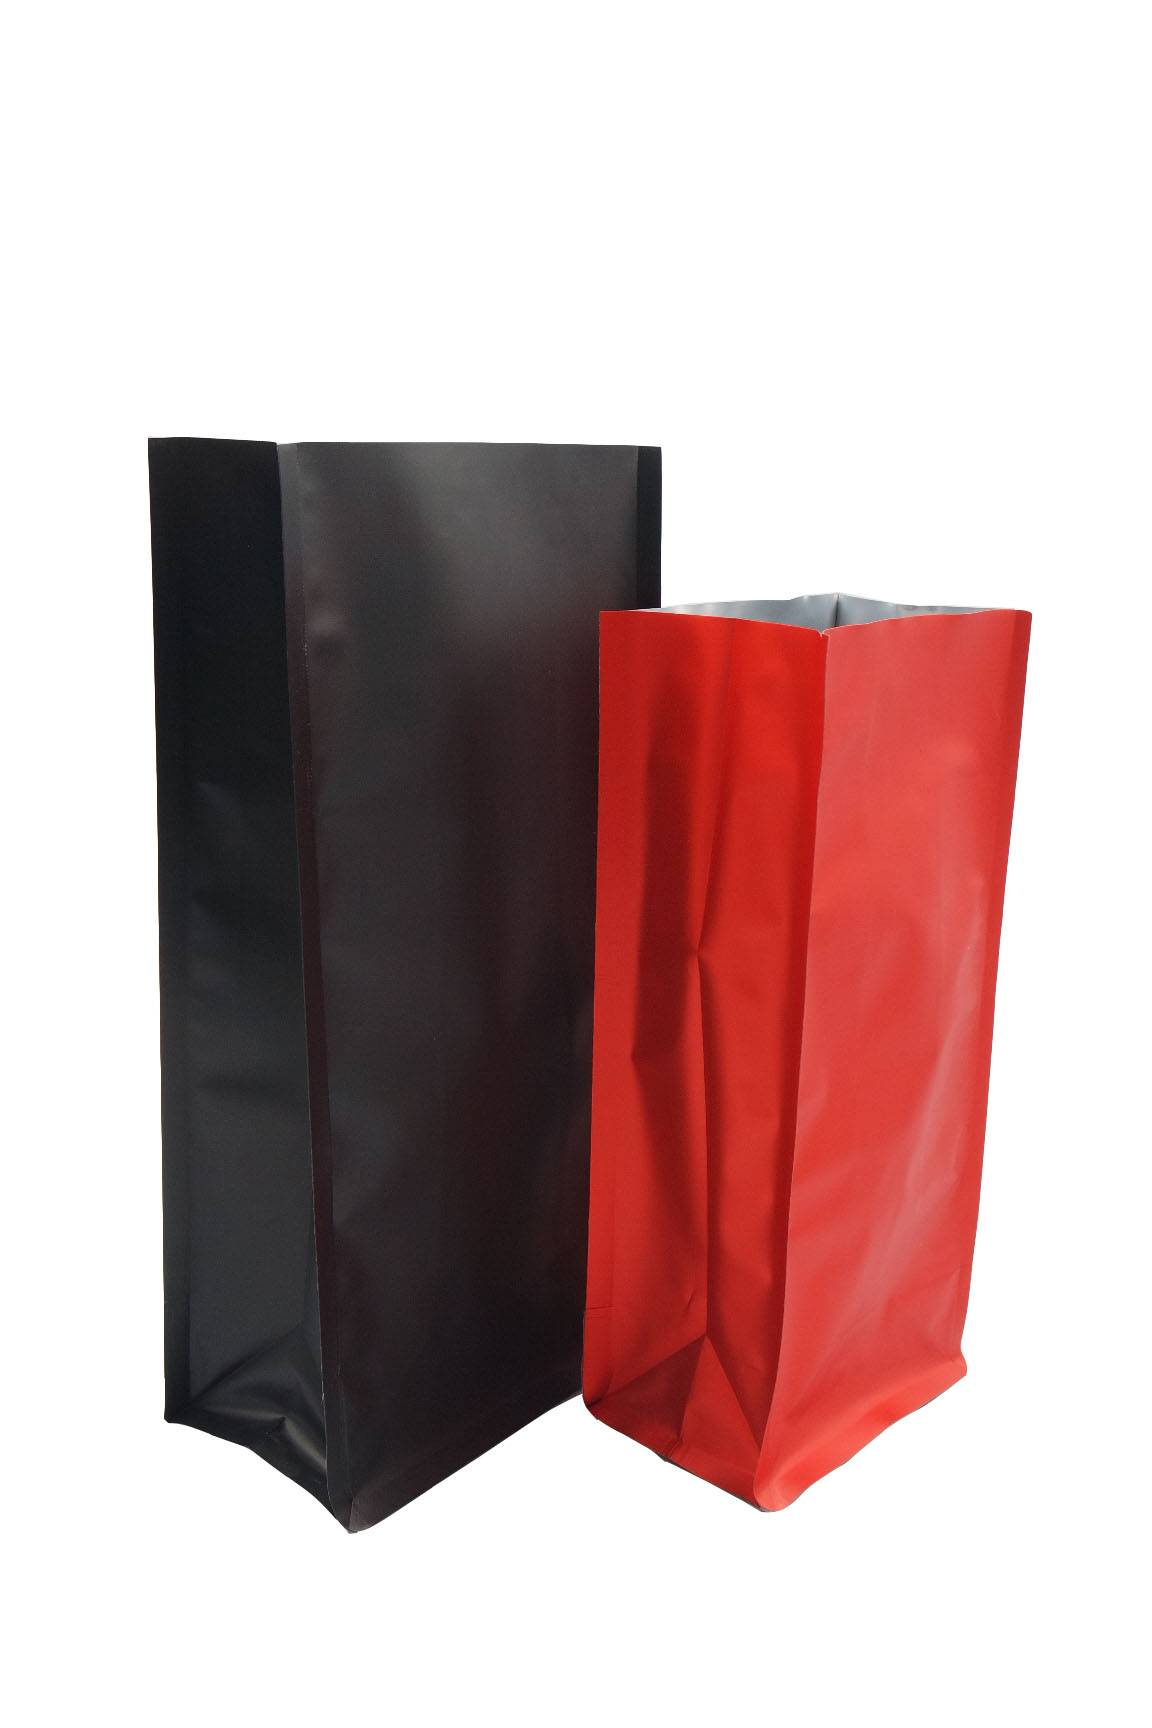 Coffee pouch with food grade laminated material